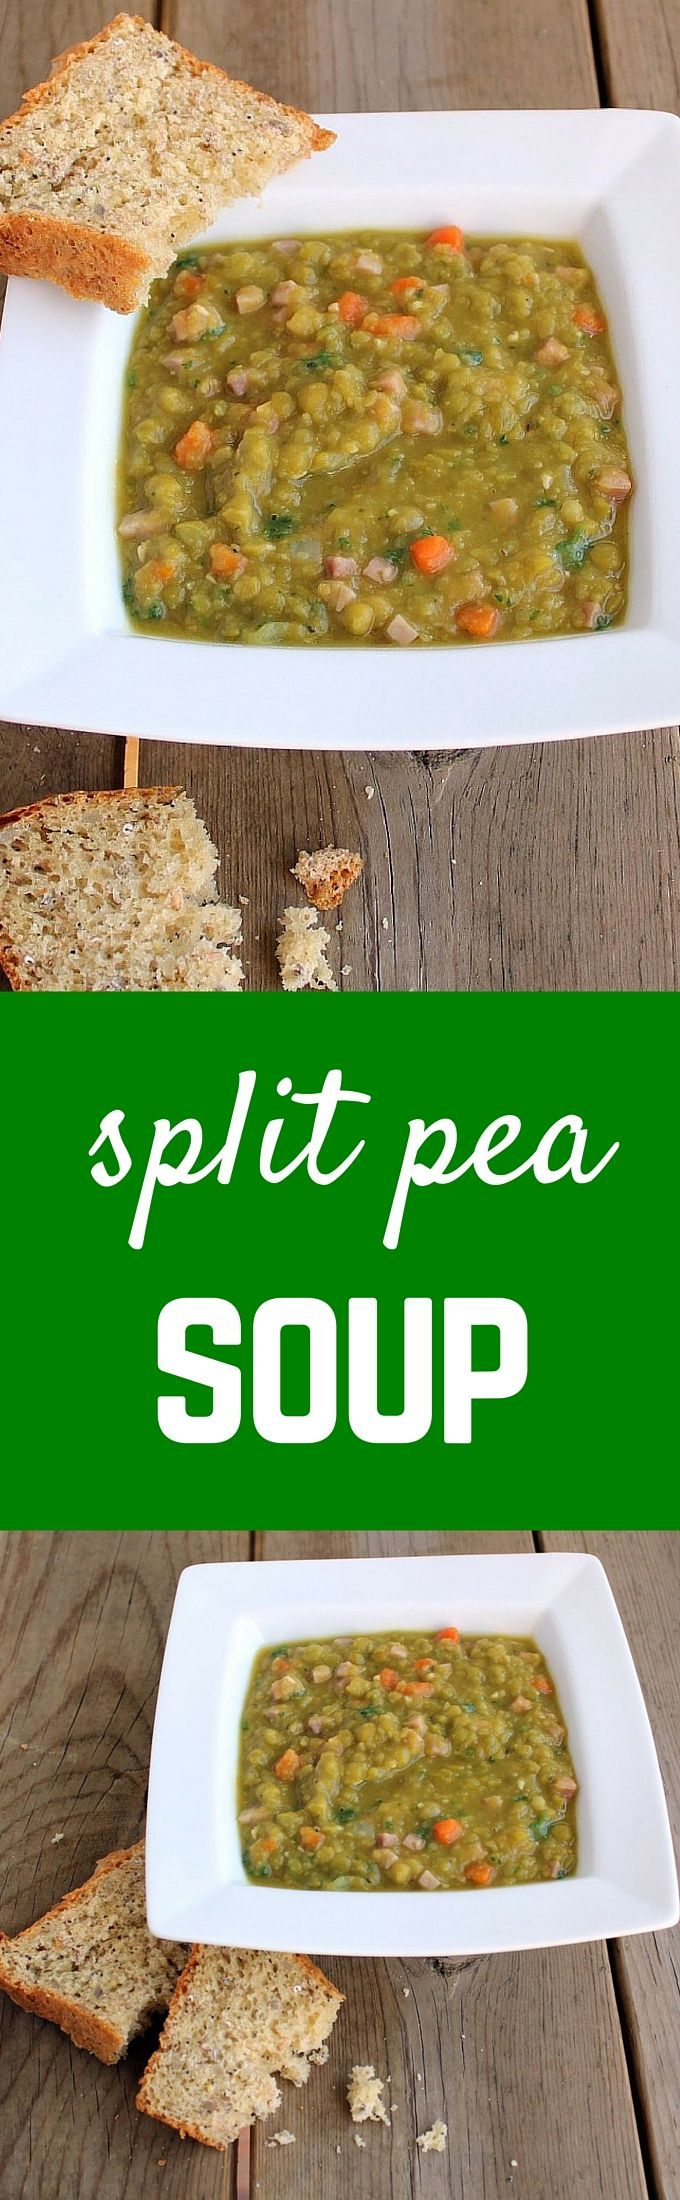 Warm, comforting, and easy to prepare split pea soup. This is one of the best easy split pea soup recipes out there! Get the easy soup recipe on RachelCooks.com!